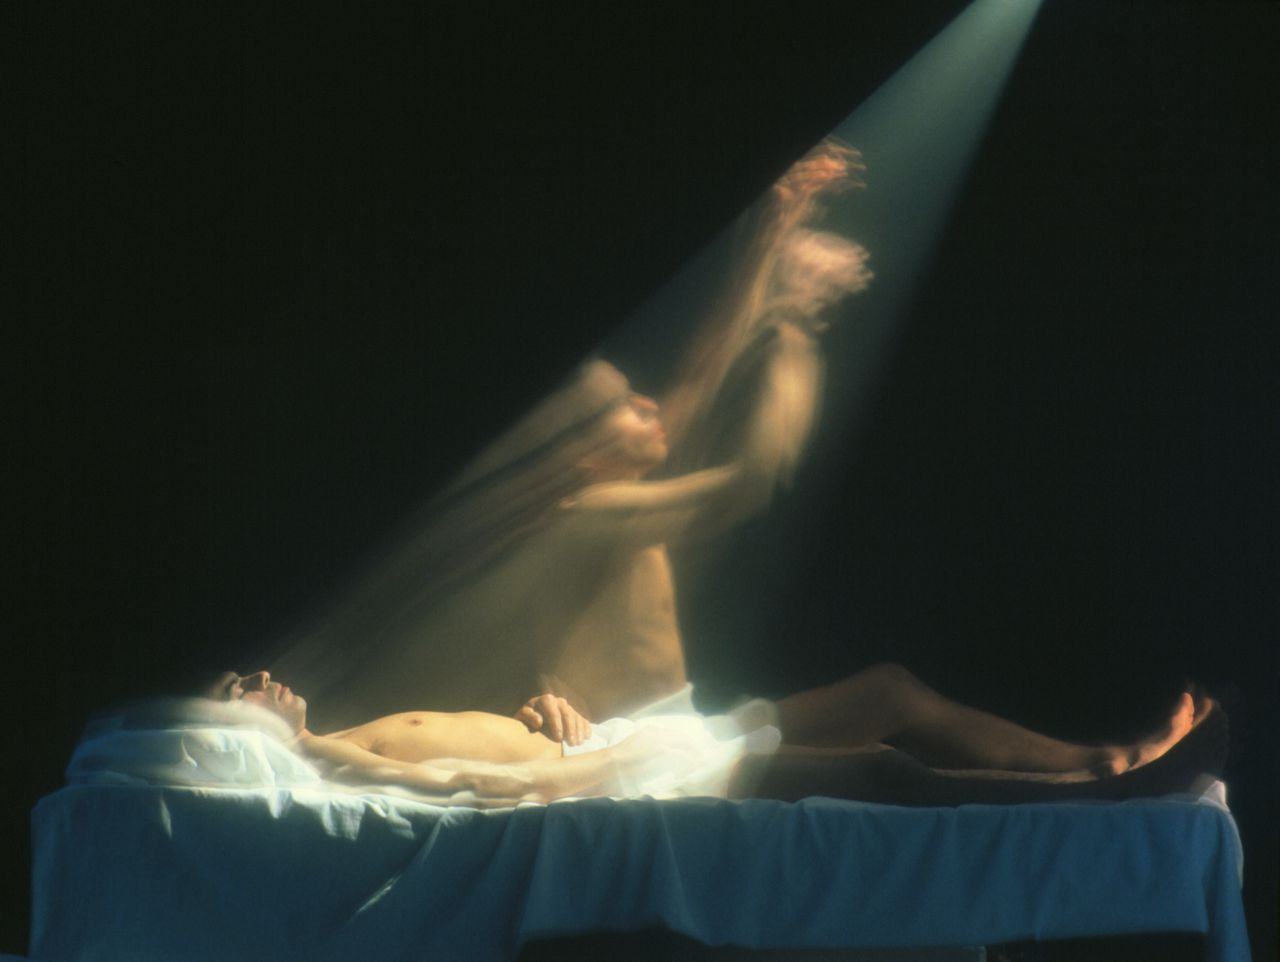 MODEL RELEASED. Abstract illustration of transfiguration, showing the ghostly form of a person departing his body.